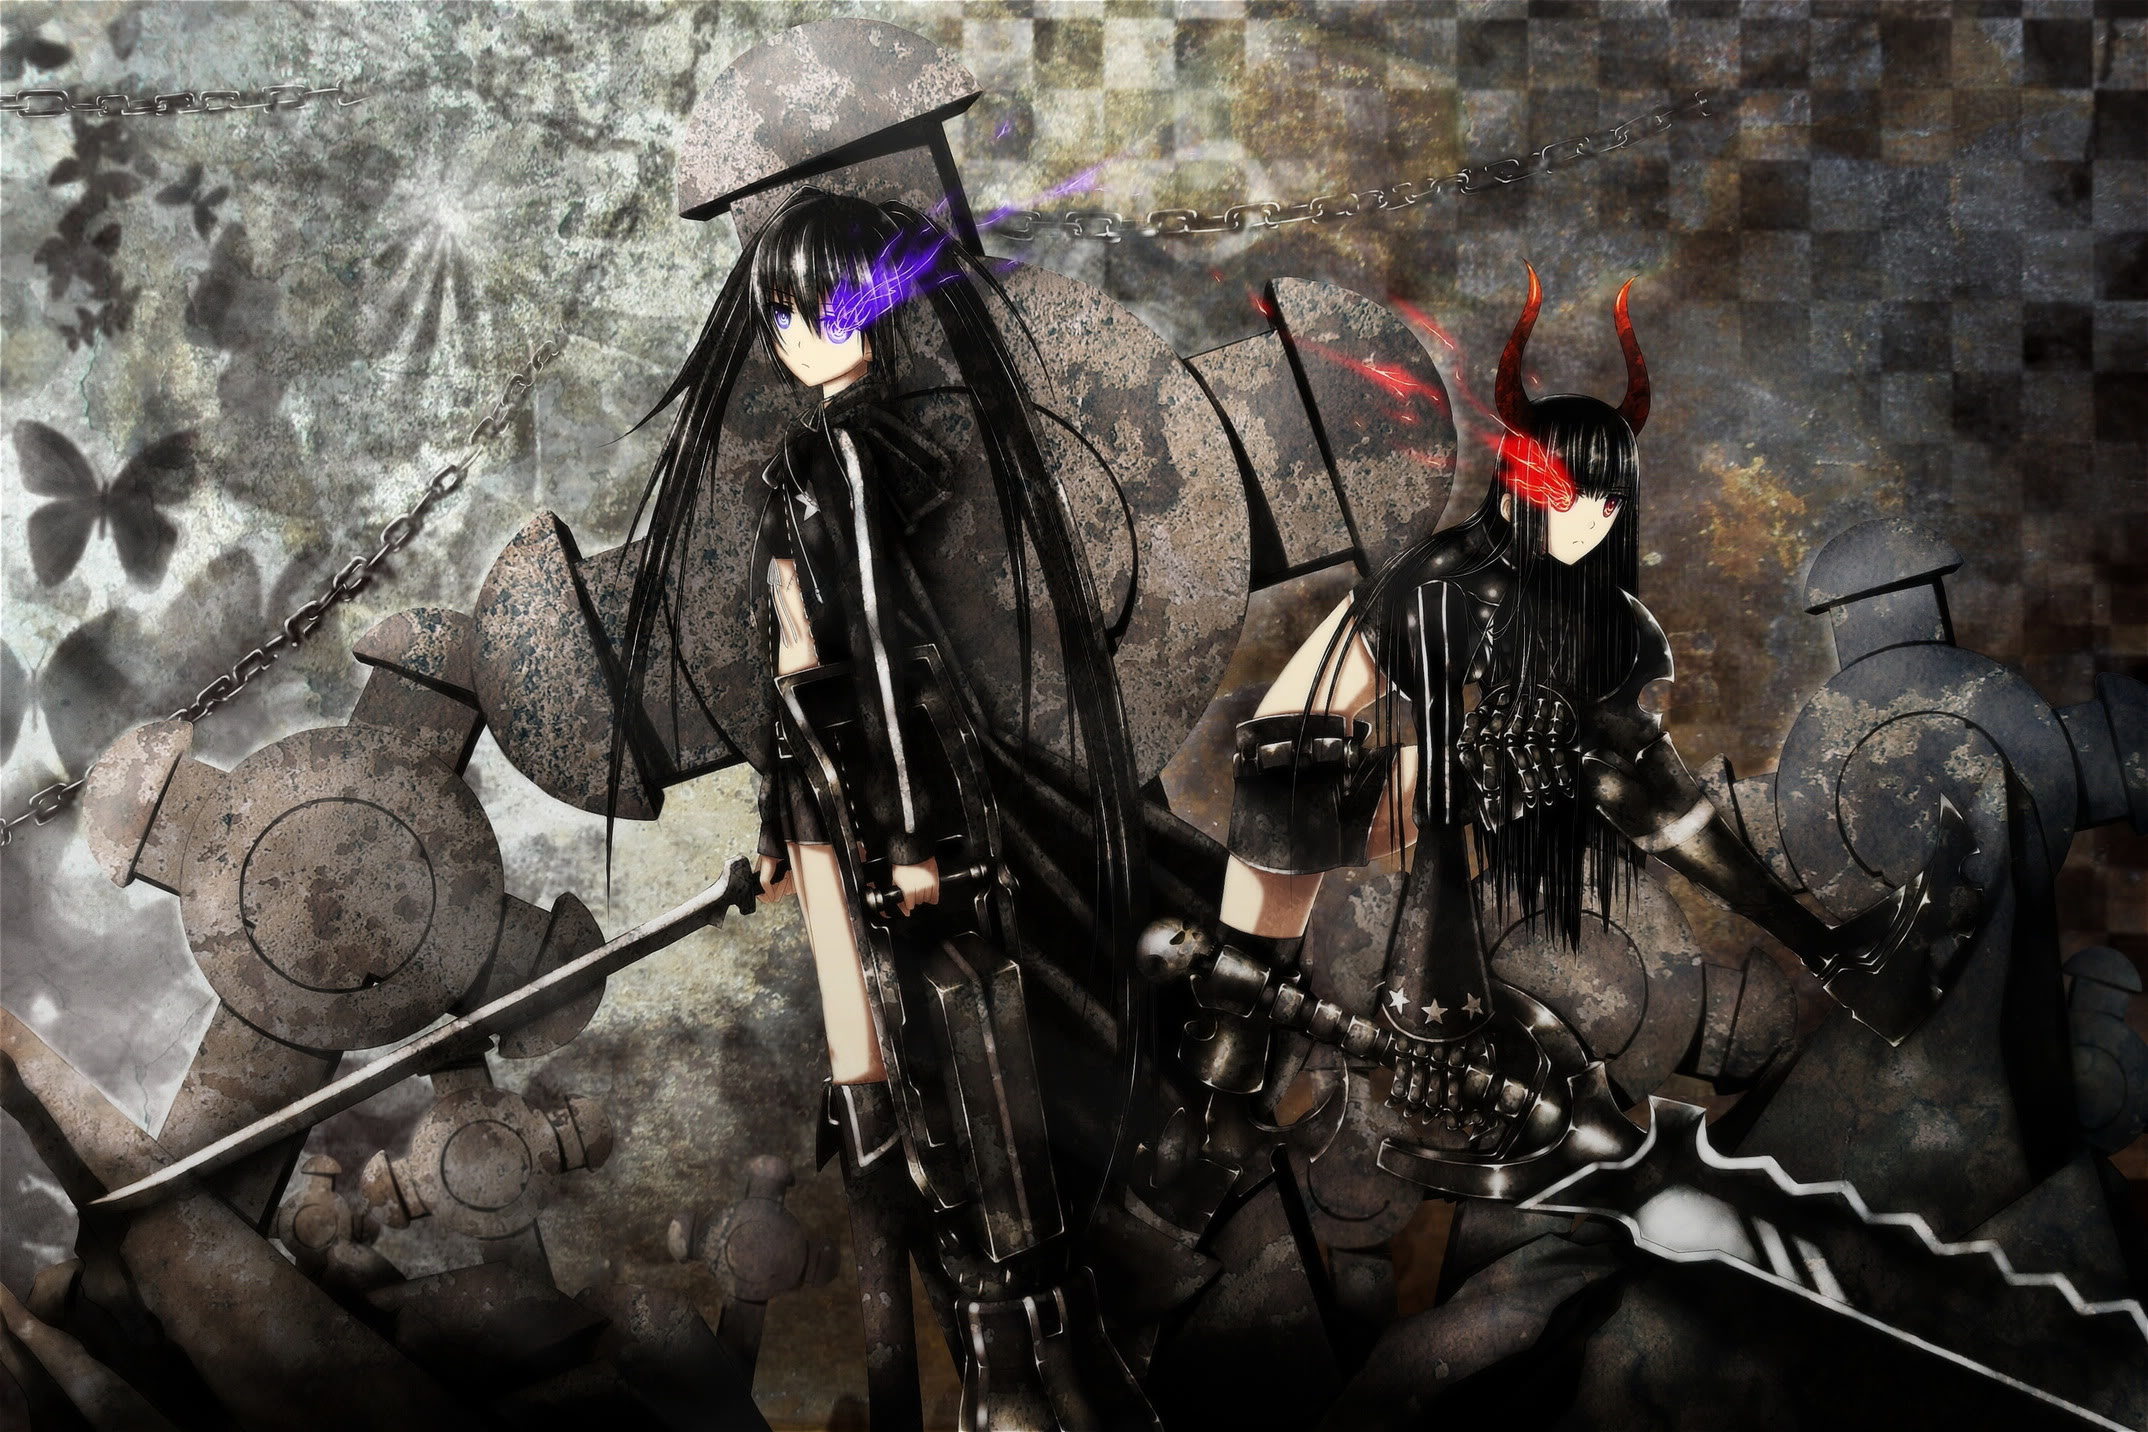 Anime Badass Girl Wallpaper Anime   black rock shooter 2148x1432